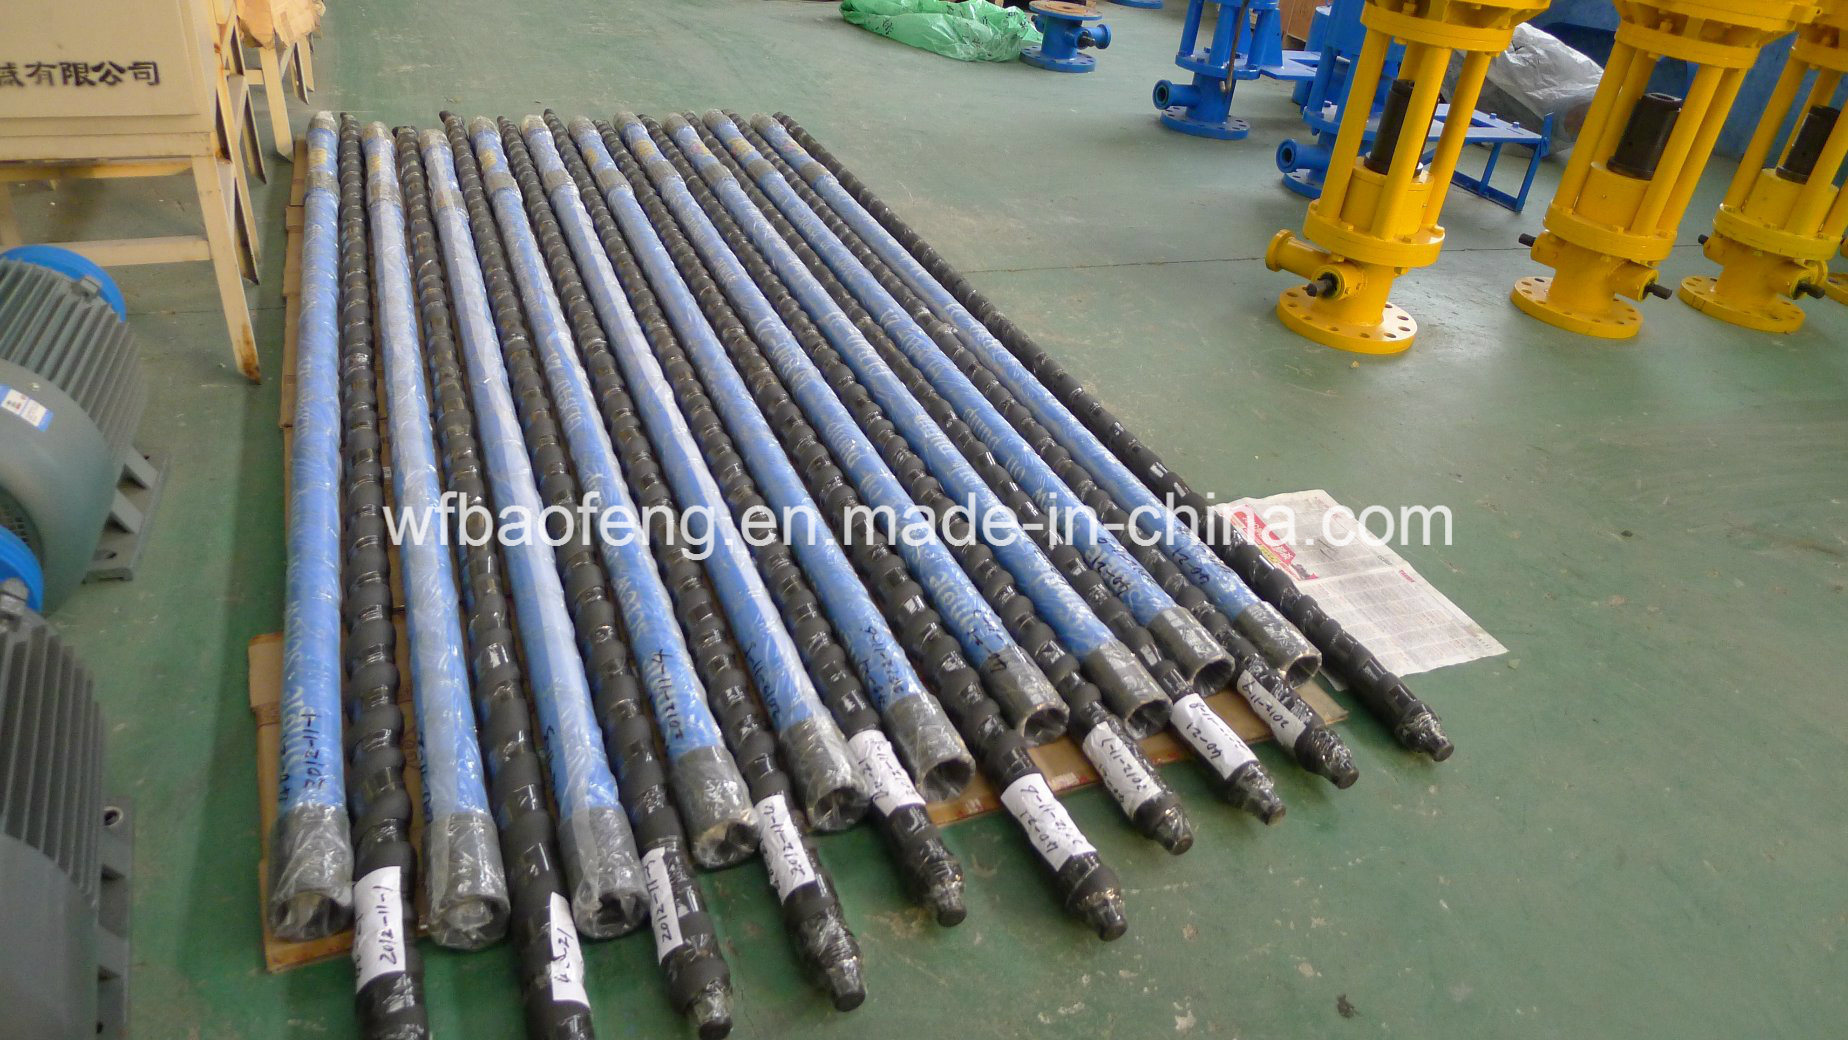 Coalbed Methane (CBM) Specialized Downhole Screw Pump Well Pump